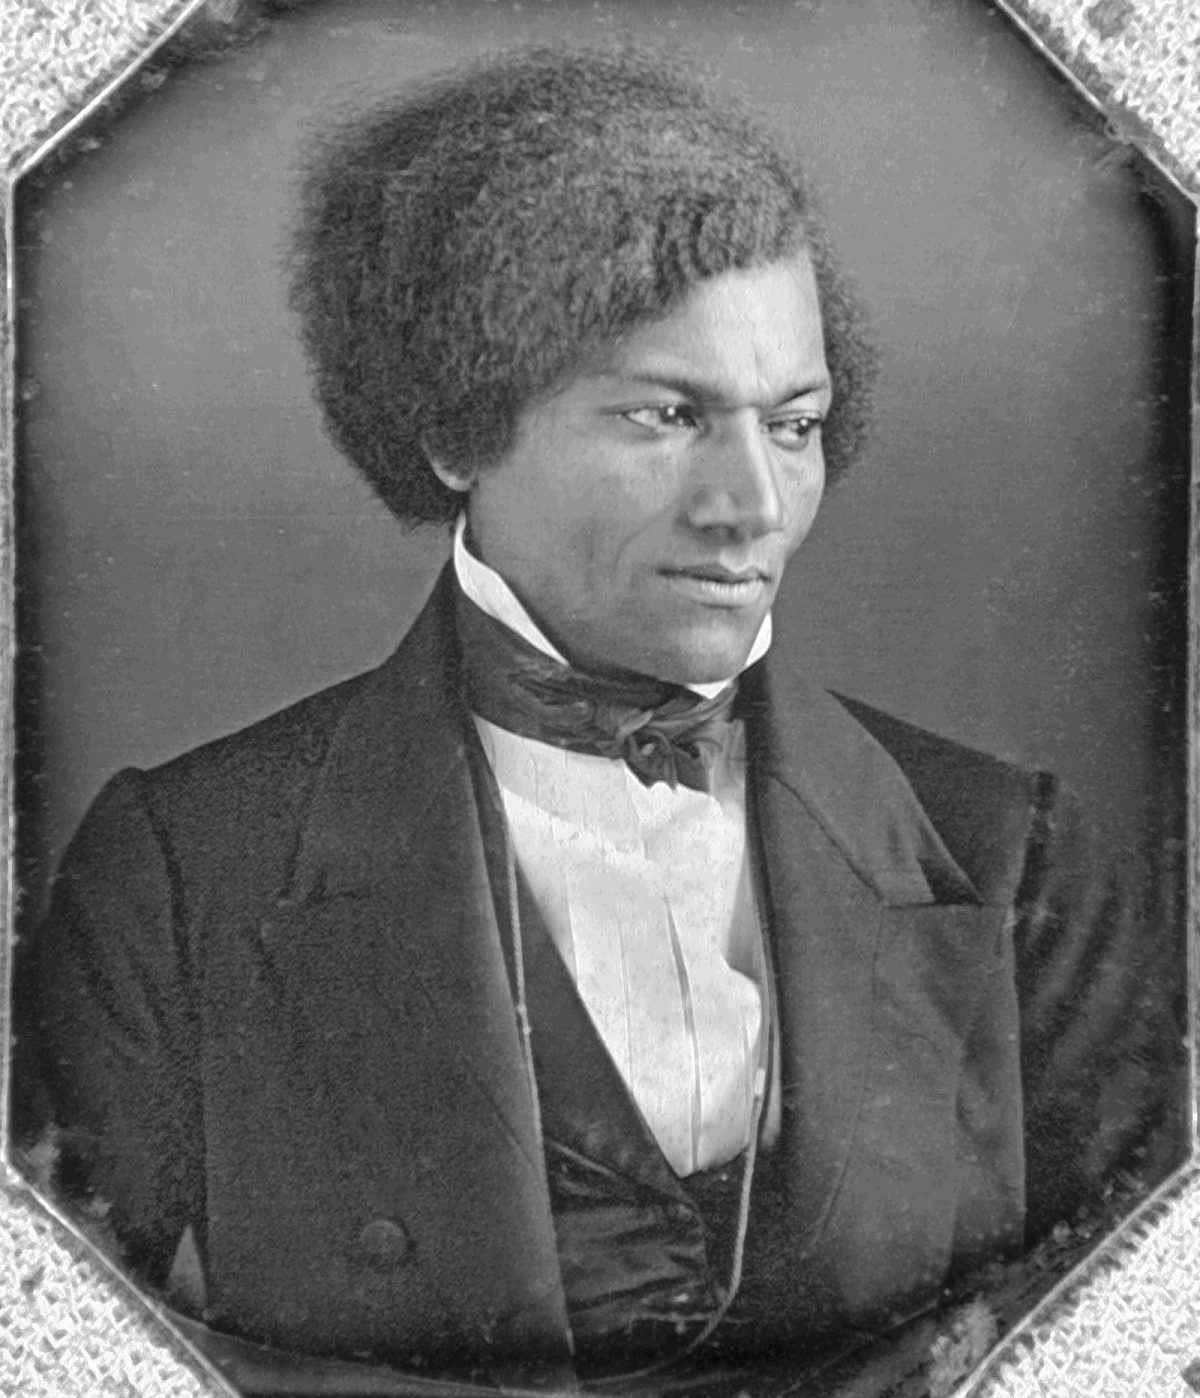 Black and white photo Frederick Douglas wearing a suit, face serious.